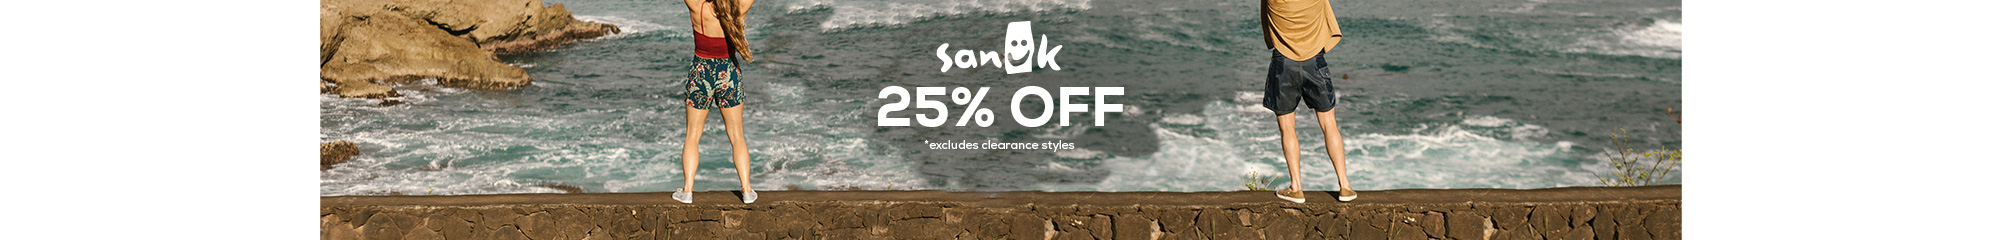 sanuk 25% off *excludes clearance